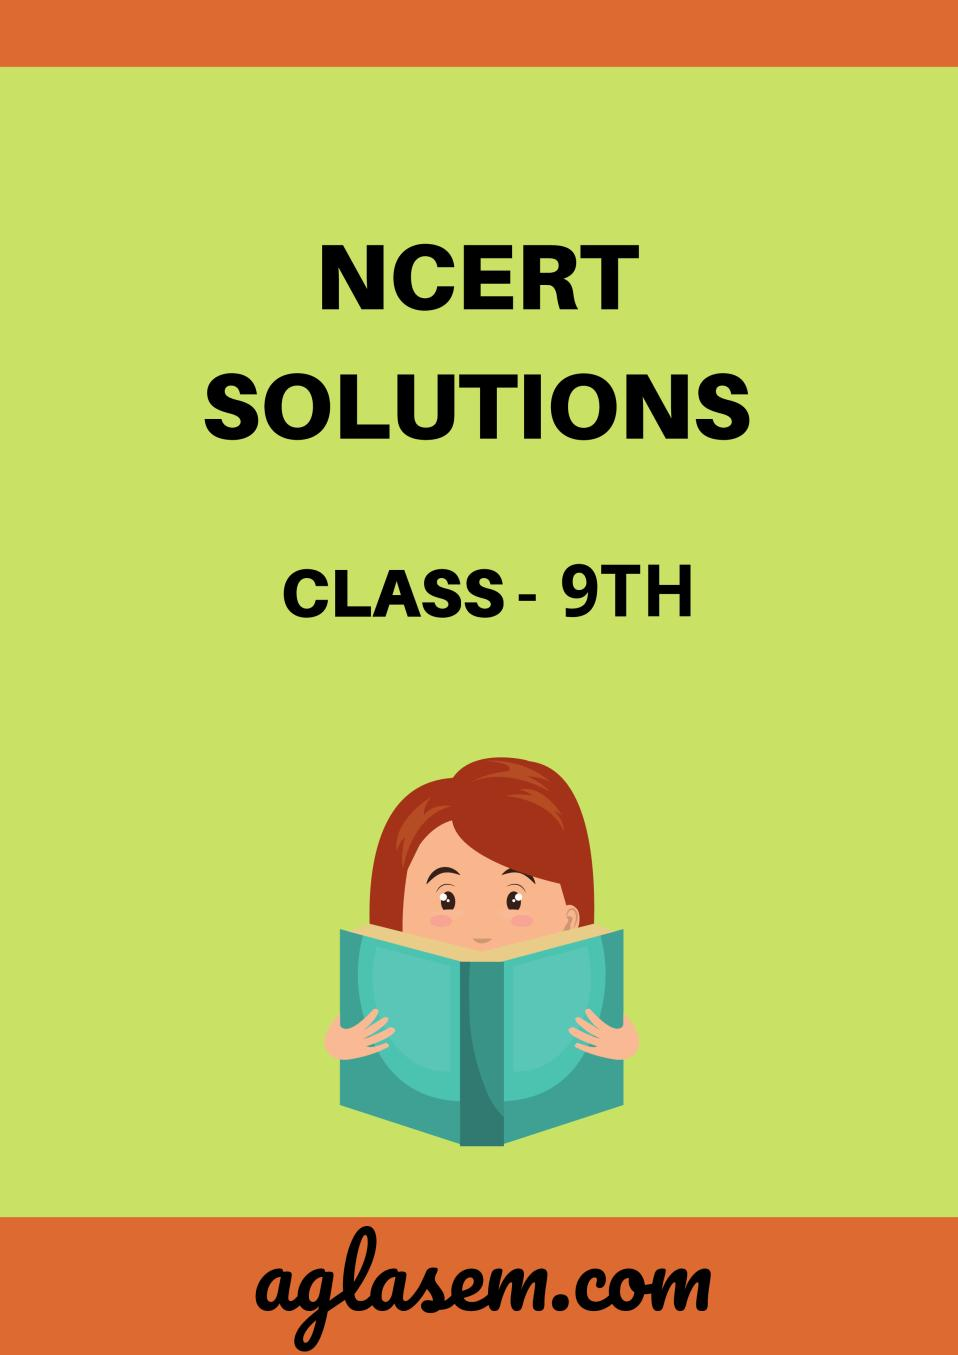 NCERT Solutions for Class 9 English (Beehive) Chapter 1 The Fun They Had